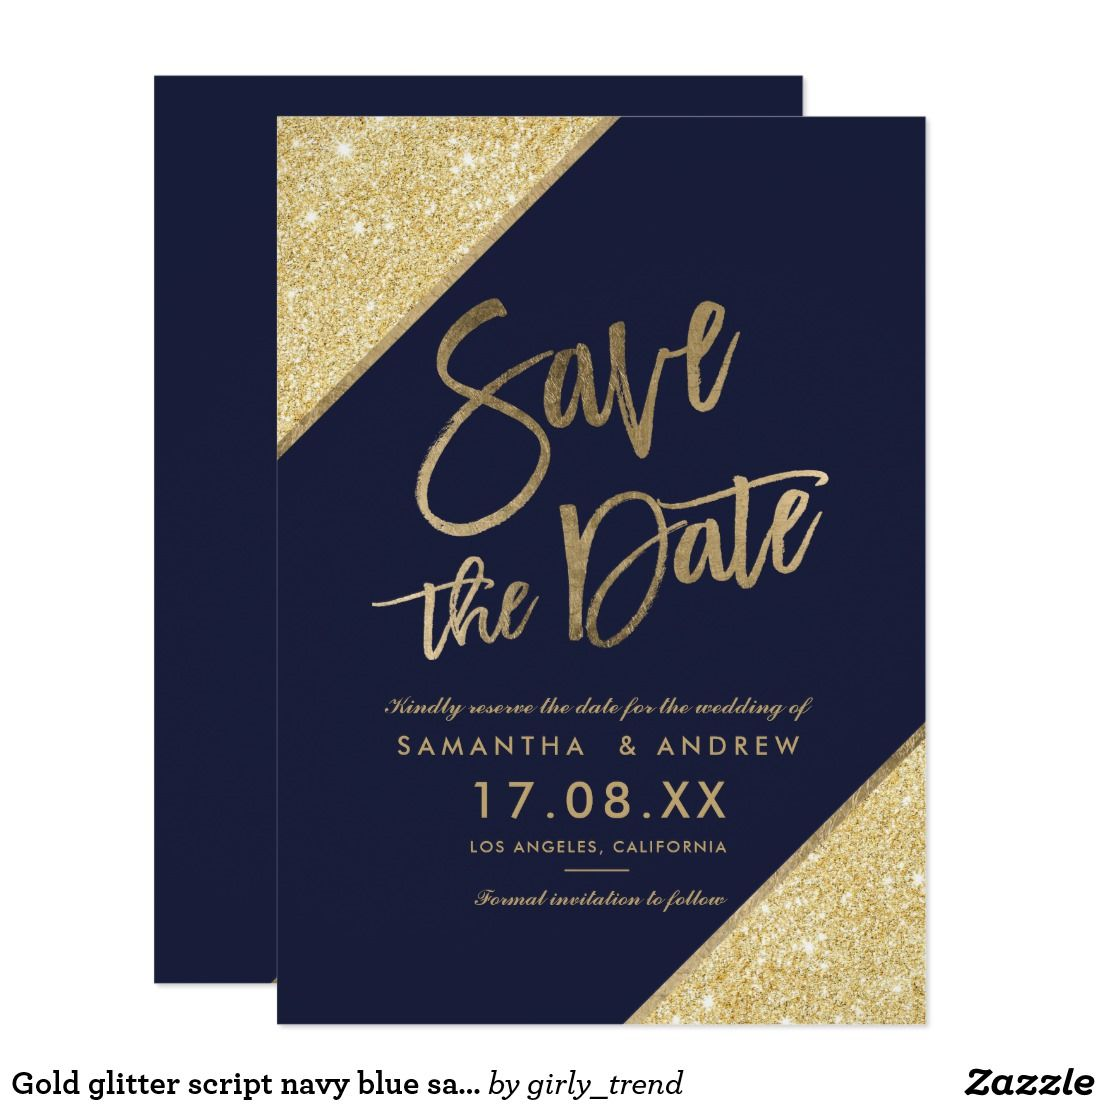 Gold Glitter Script Navy Blue Save The Date Zazzle Com Gold Save The Dates Blue Save The Dates Save The Date Cards